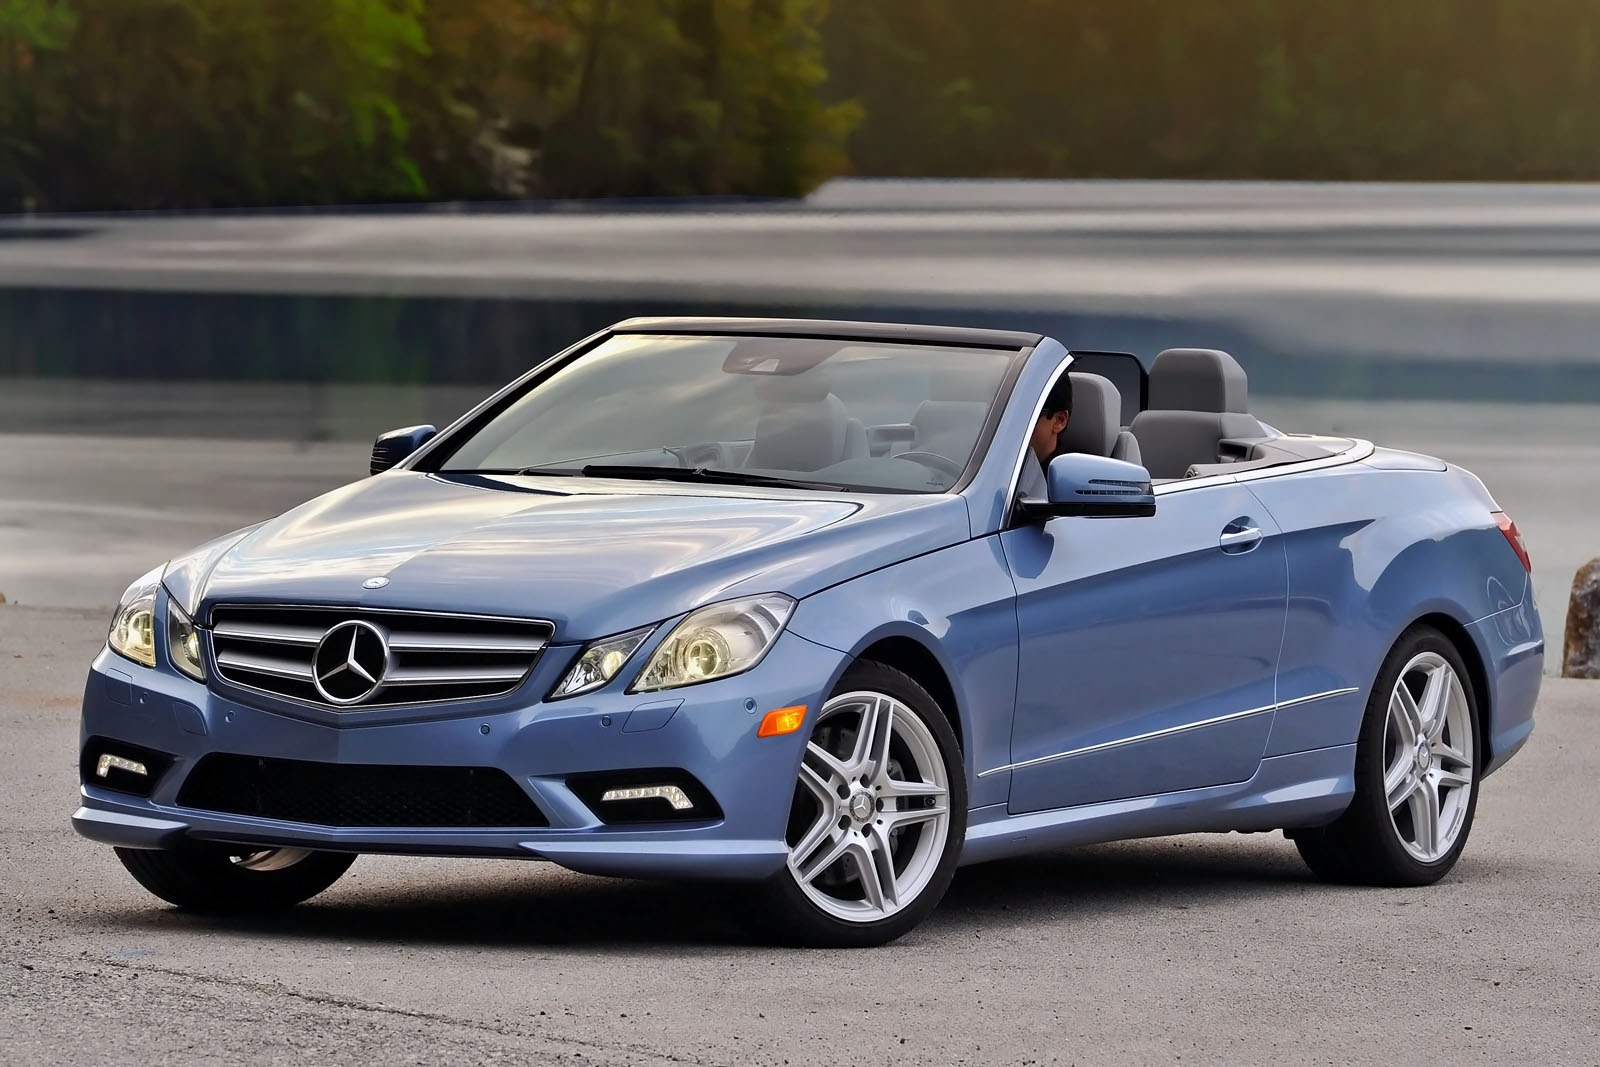 2013 mercedes benz e class image 9 for 2013 mercedes benz e350 cabriolet